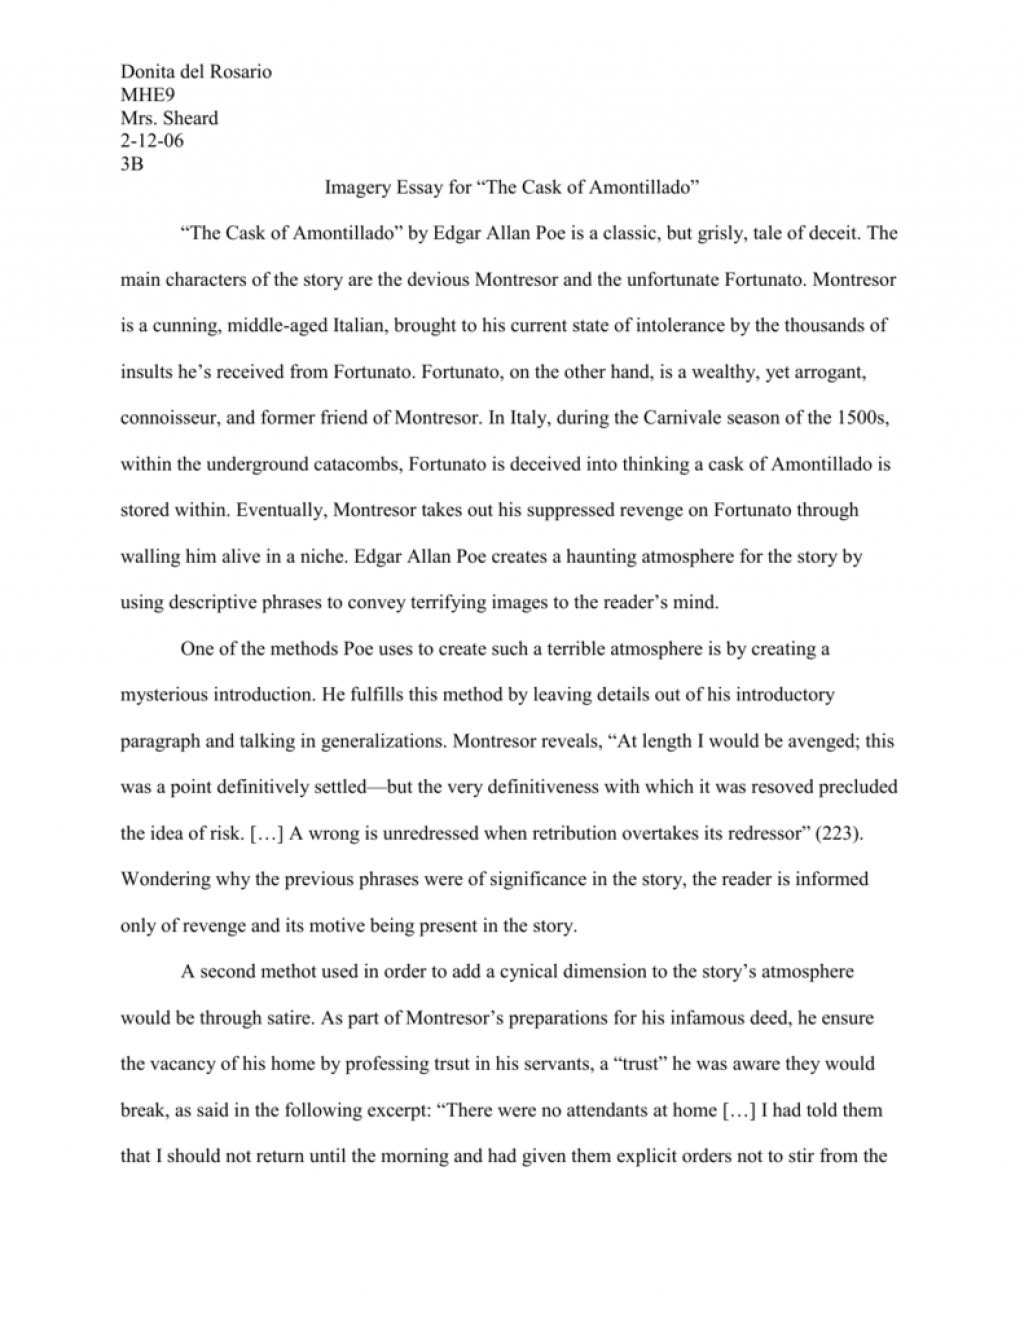 002 Essay Example 008018307 1 The Cask Of Unforgettable Amontillado Outline Prompts Topics Large